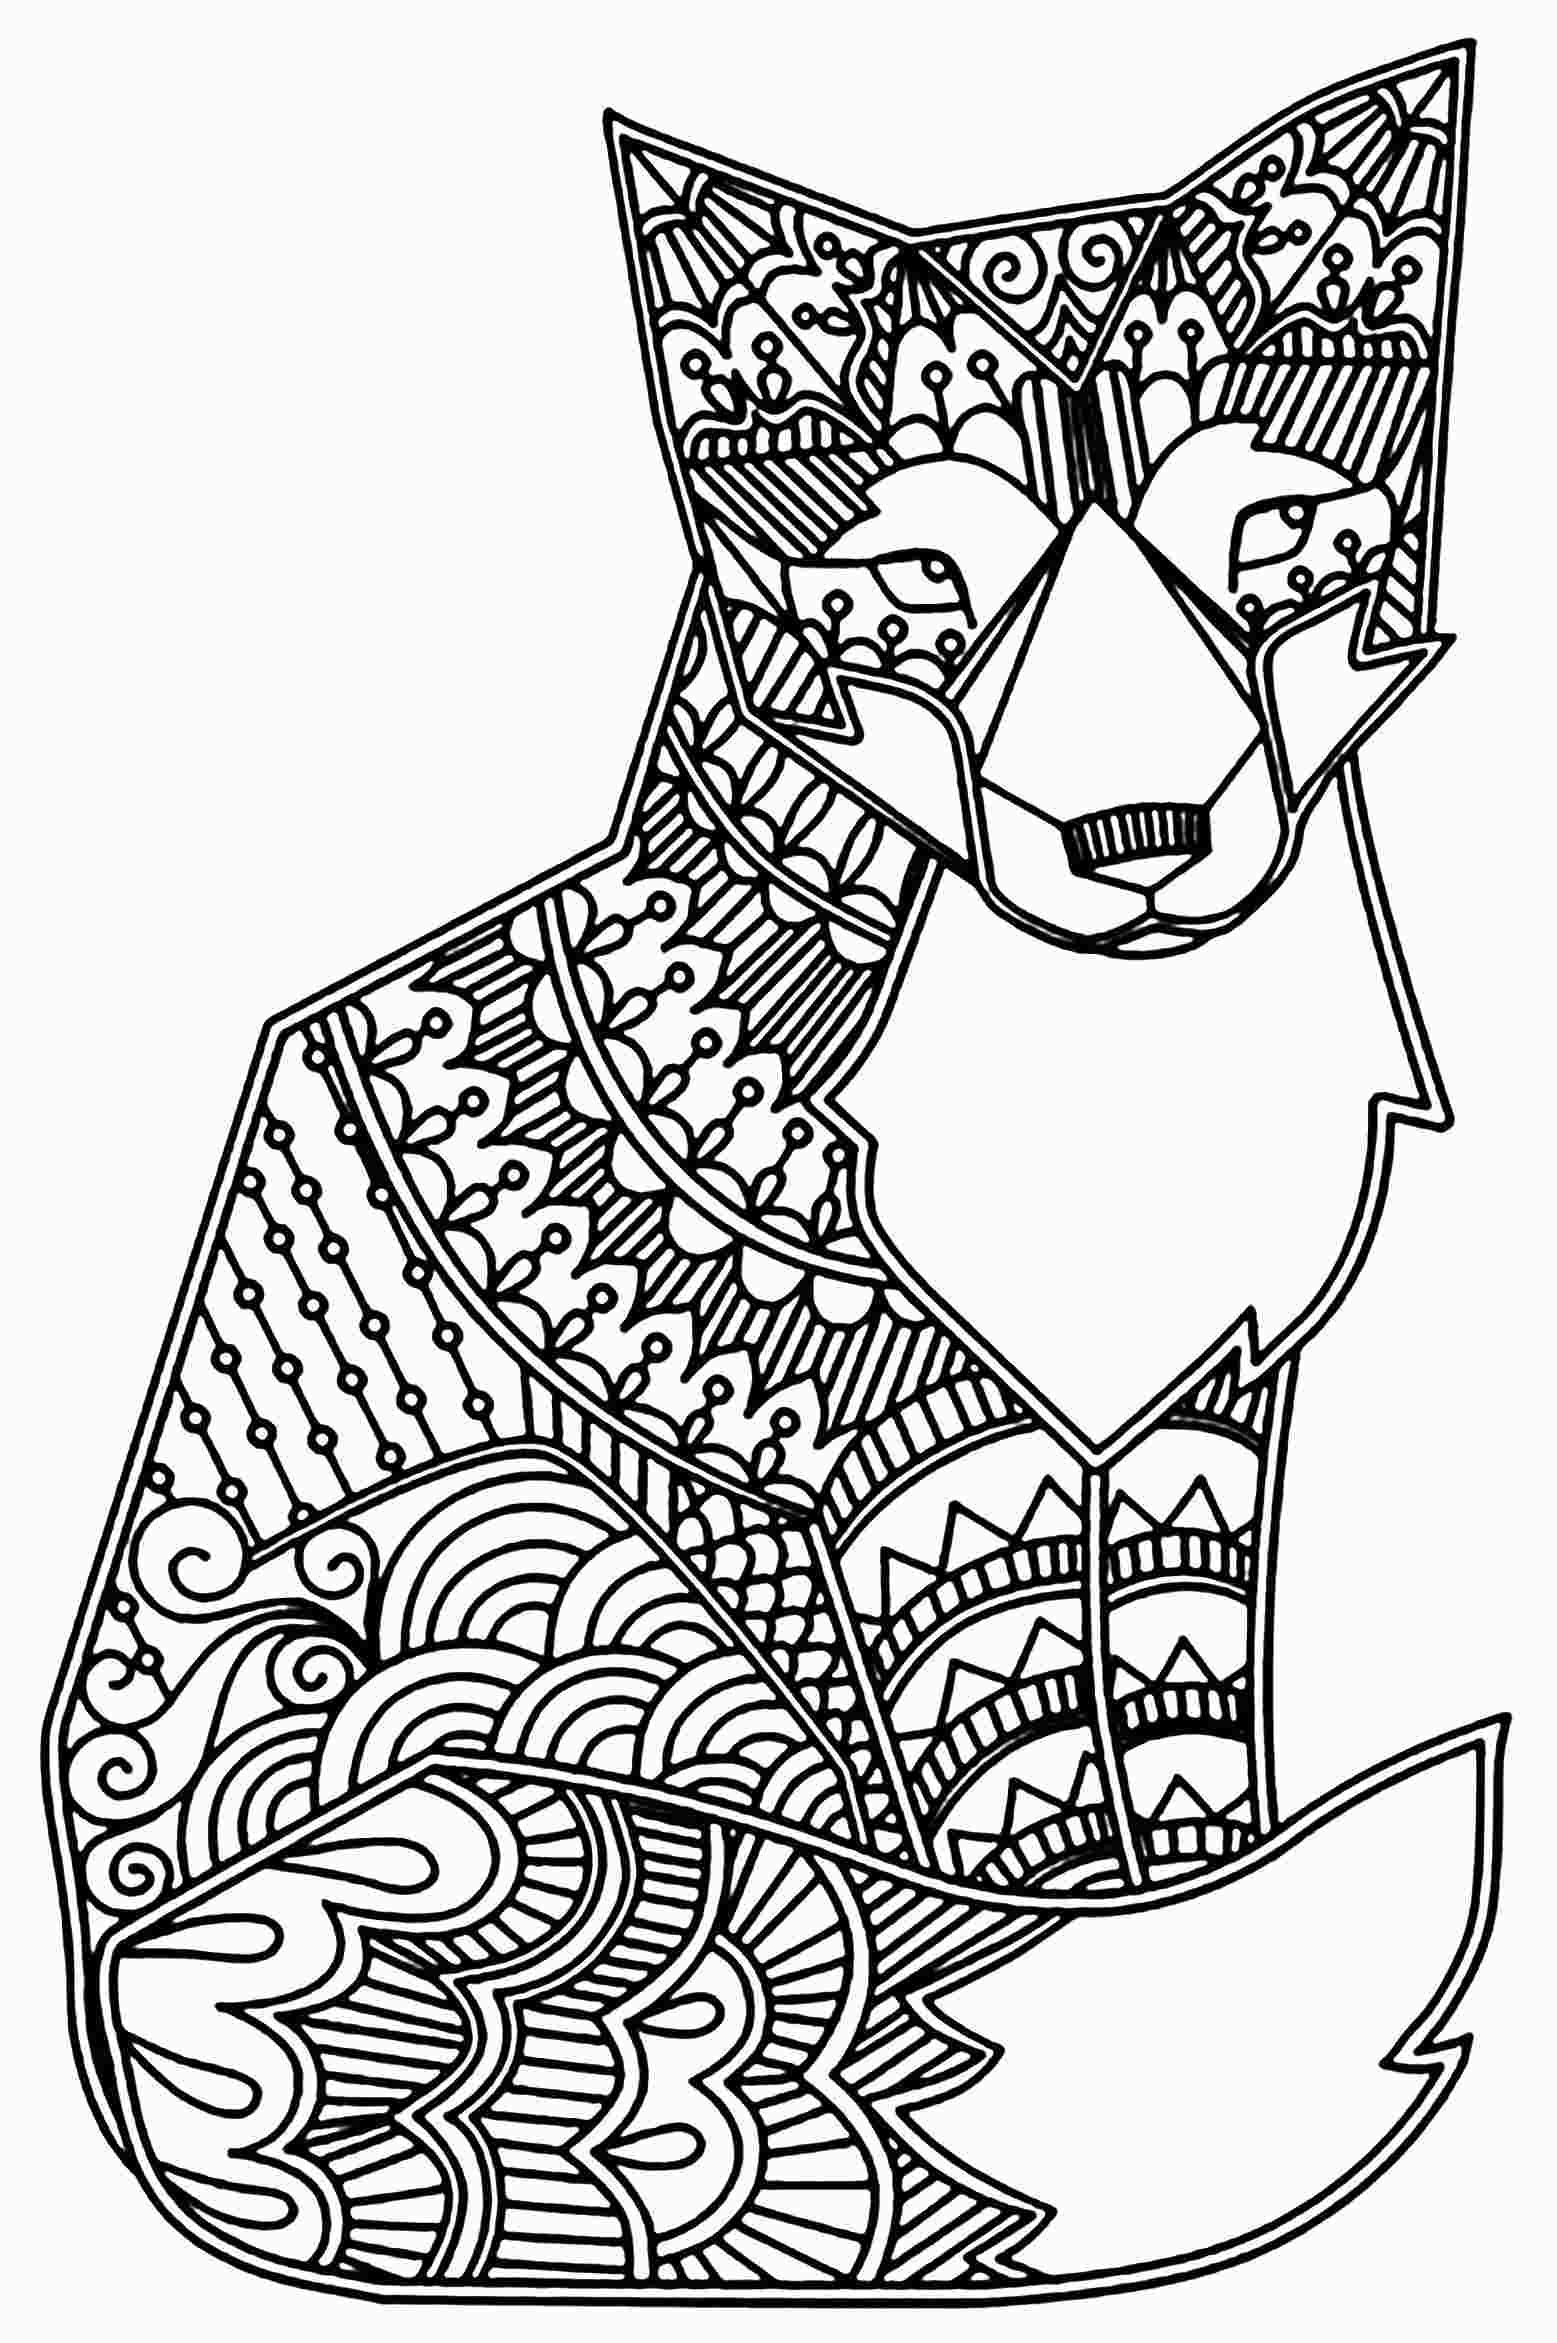 Animal Design Coloring Pages Fox Coloring Page Animal Coloring